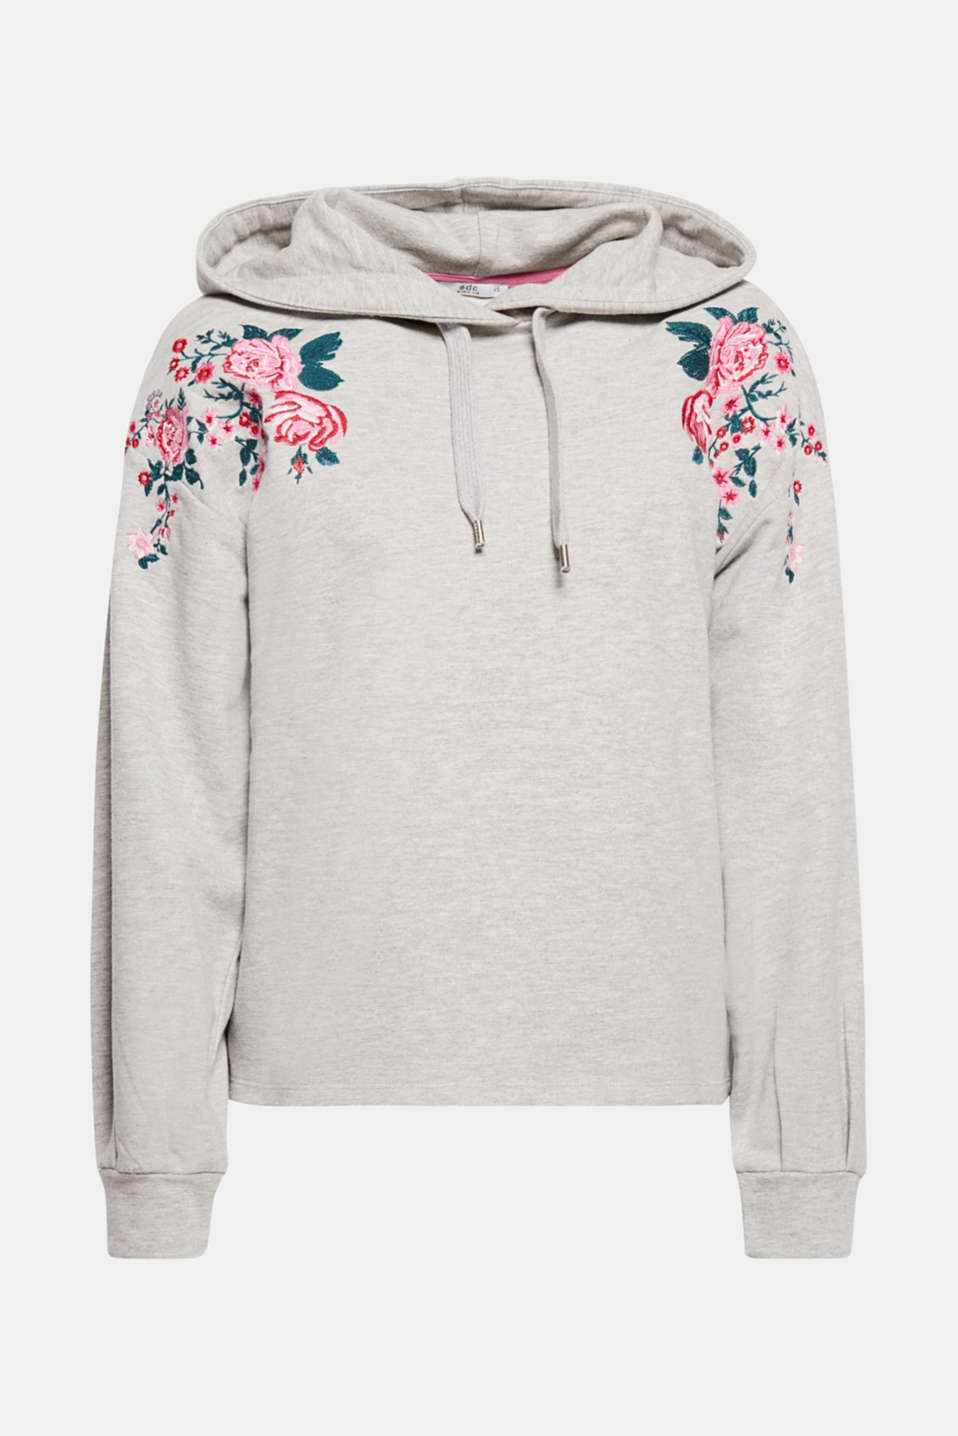 We love embroidery! The feminine floral embroidery gives this hoodie its trend appeal.